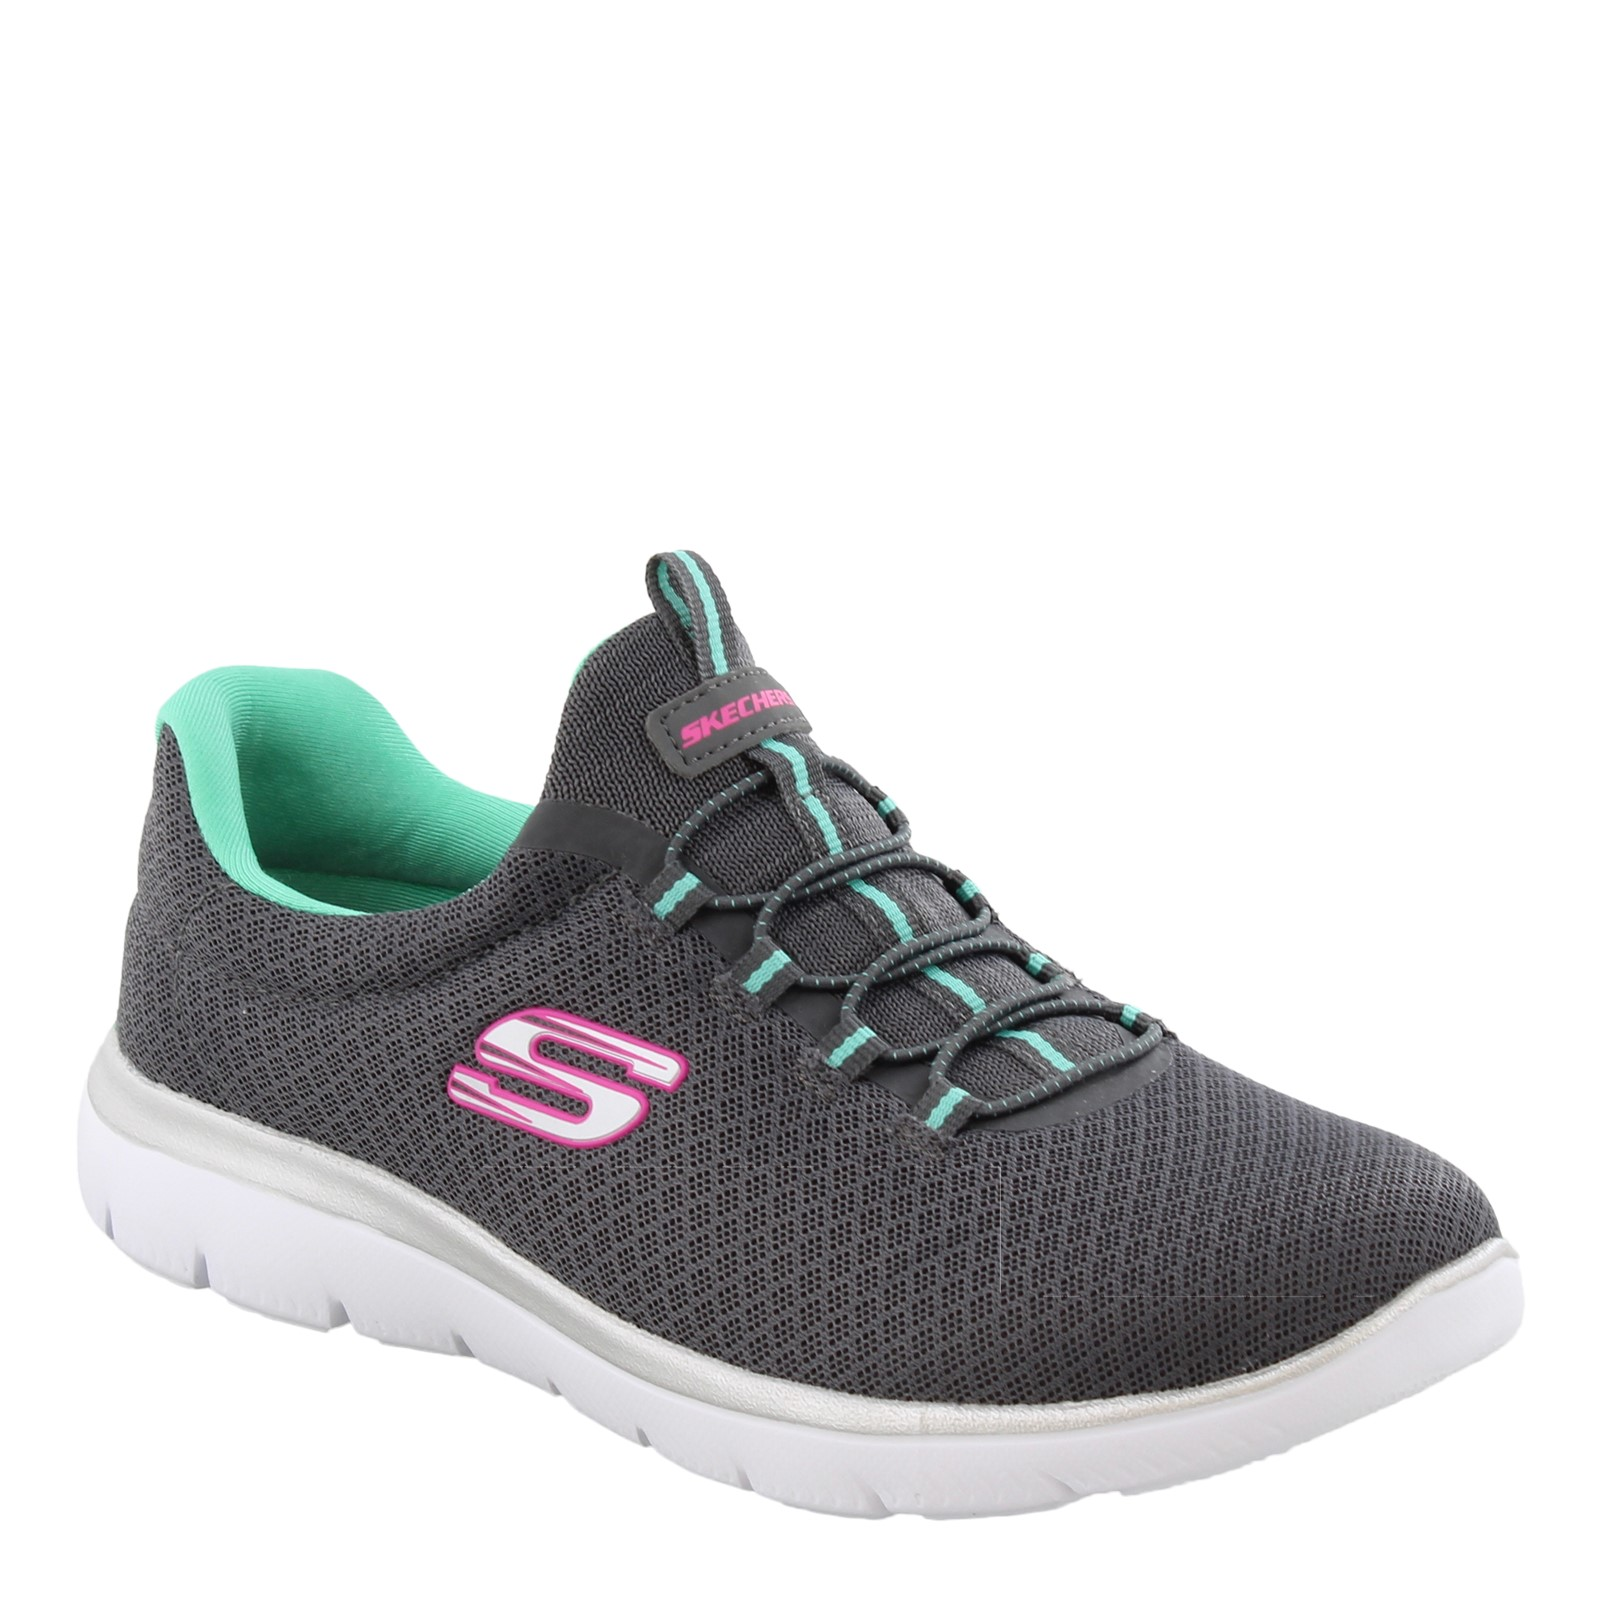 Women's Skechers, Summits Slip on Sneaker